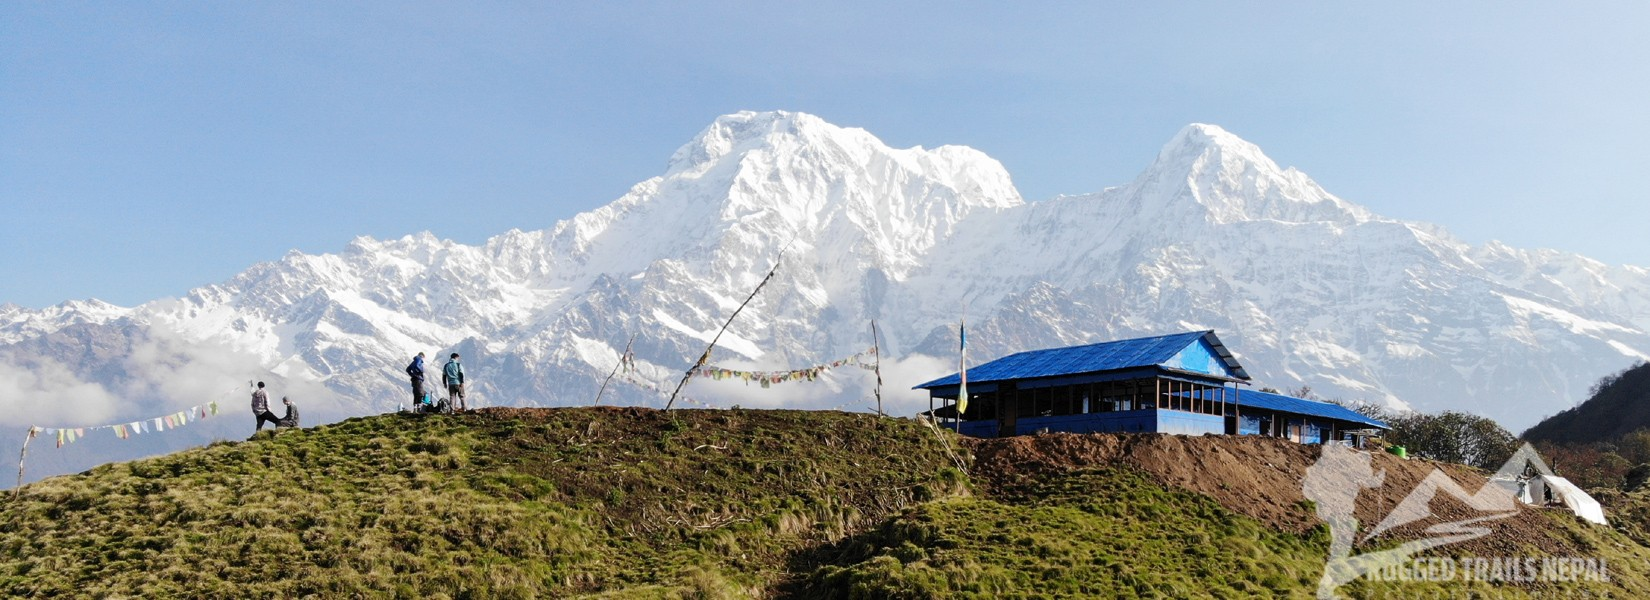 nepal traveling not to discover sights but to find new eyes